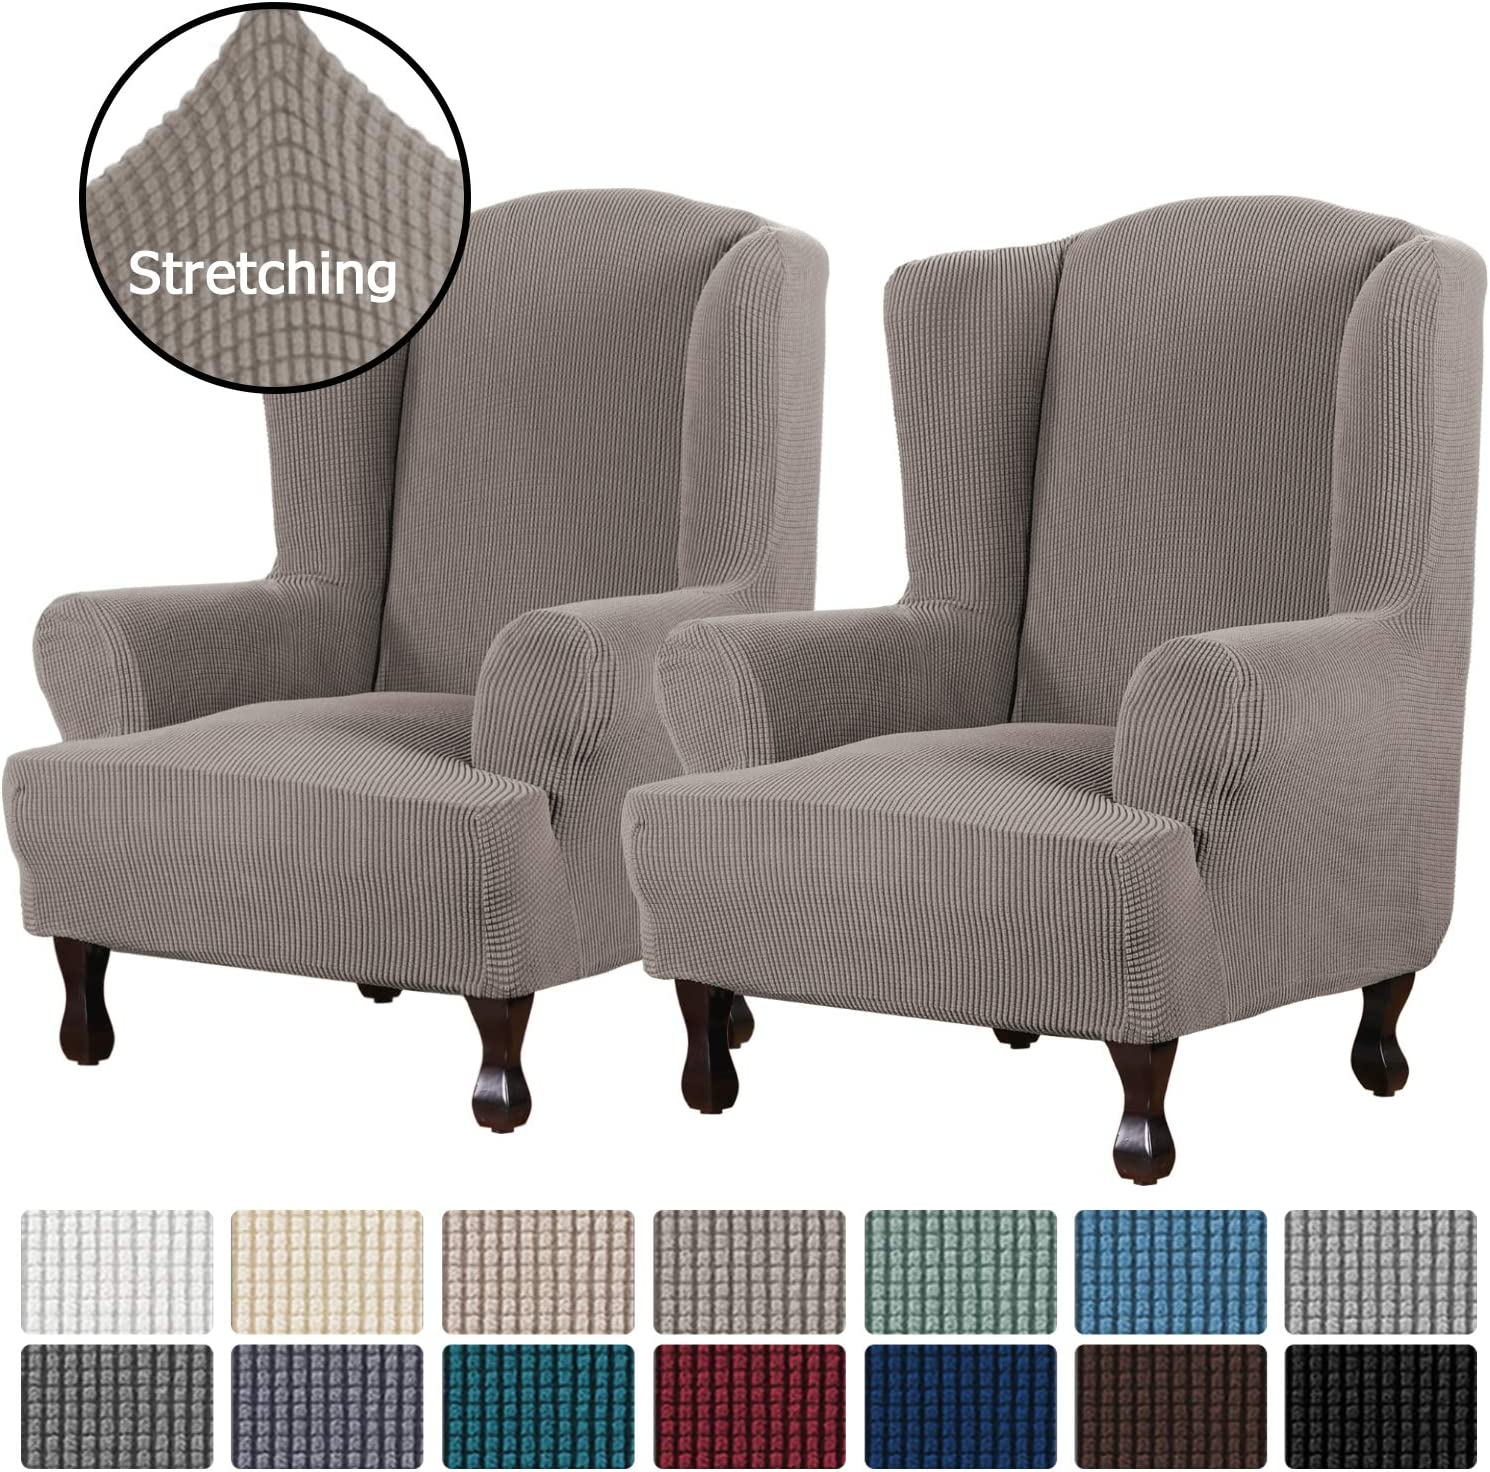 Wing Chair, Burgundy Red 1 Piece Super Stretch Stylish Furniture Cover//Wingback Chair Cover Slipcover Spandex Jacquard Checked Pattern Super Soft Slipcover Machine Washable//Skid Resistance